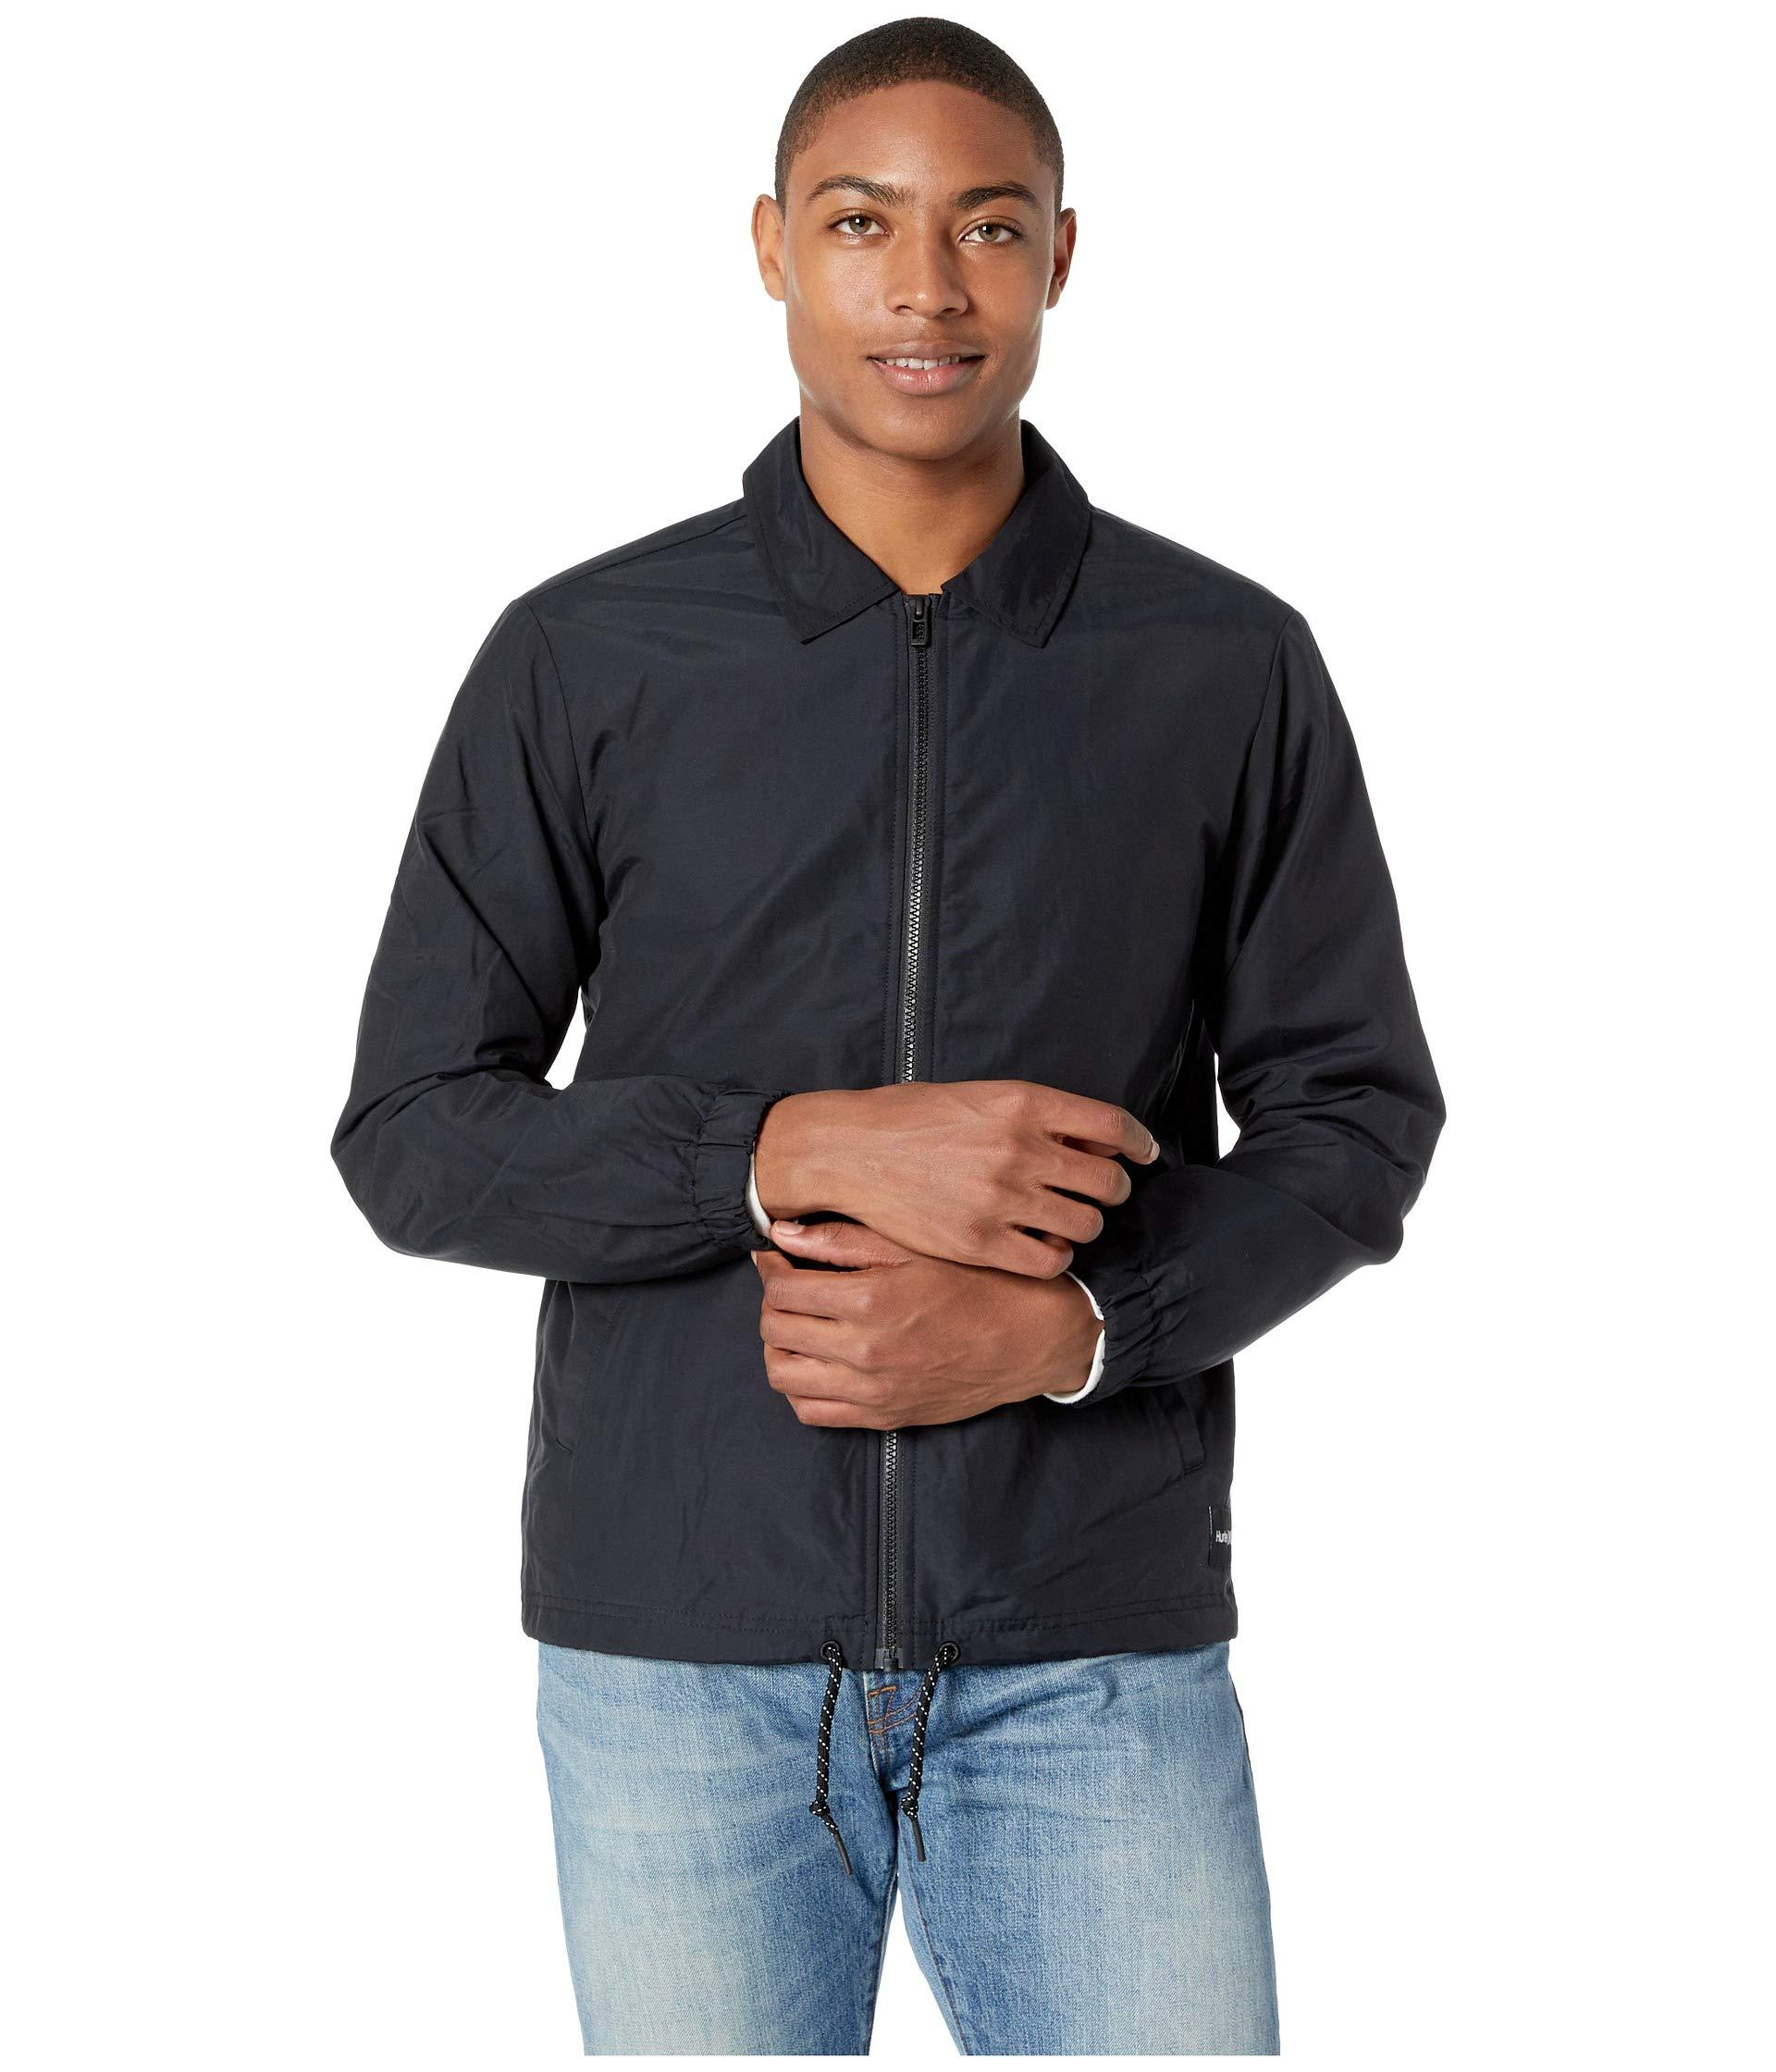 443d894e781 Lyst - Hurley Jacket Of Spades in Black for Men